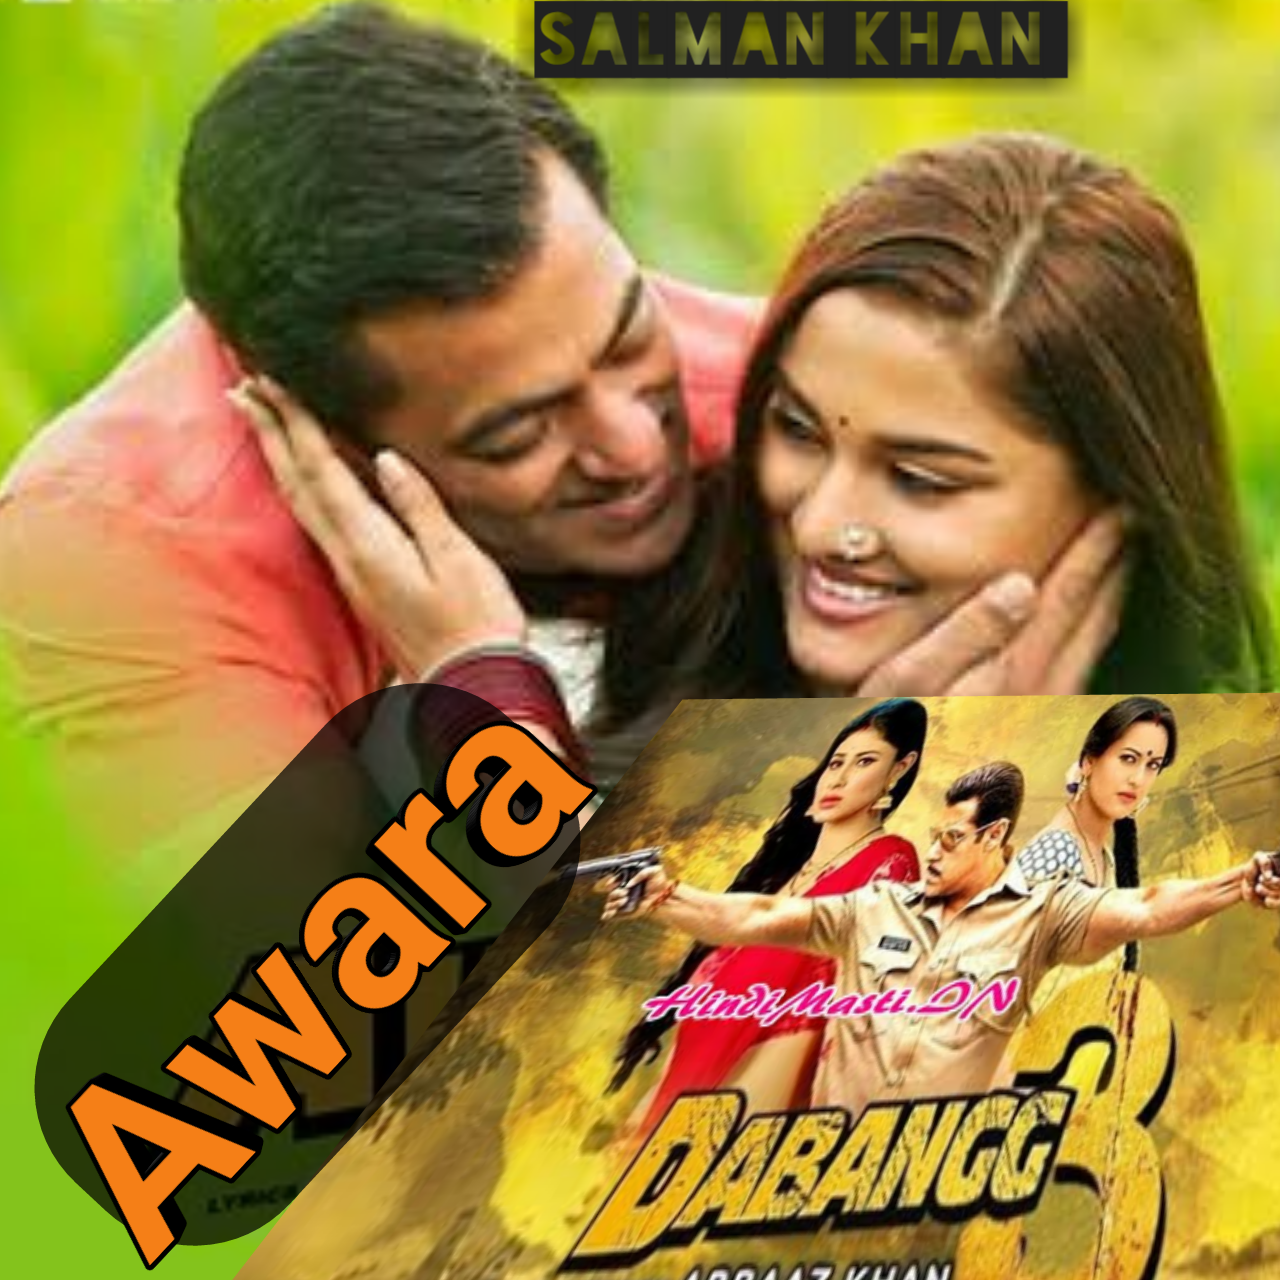 Full Video: Awara Lyrics  | Dabangg 3 | Salman Khan, Sonakshi, song lyrics in english